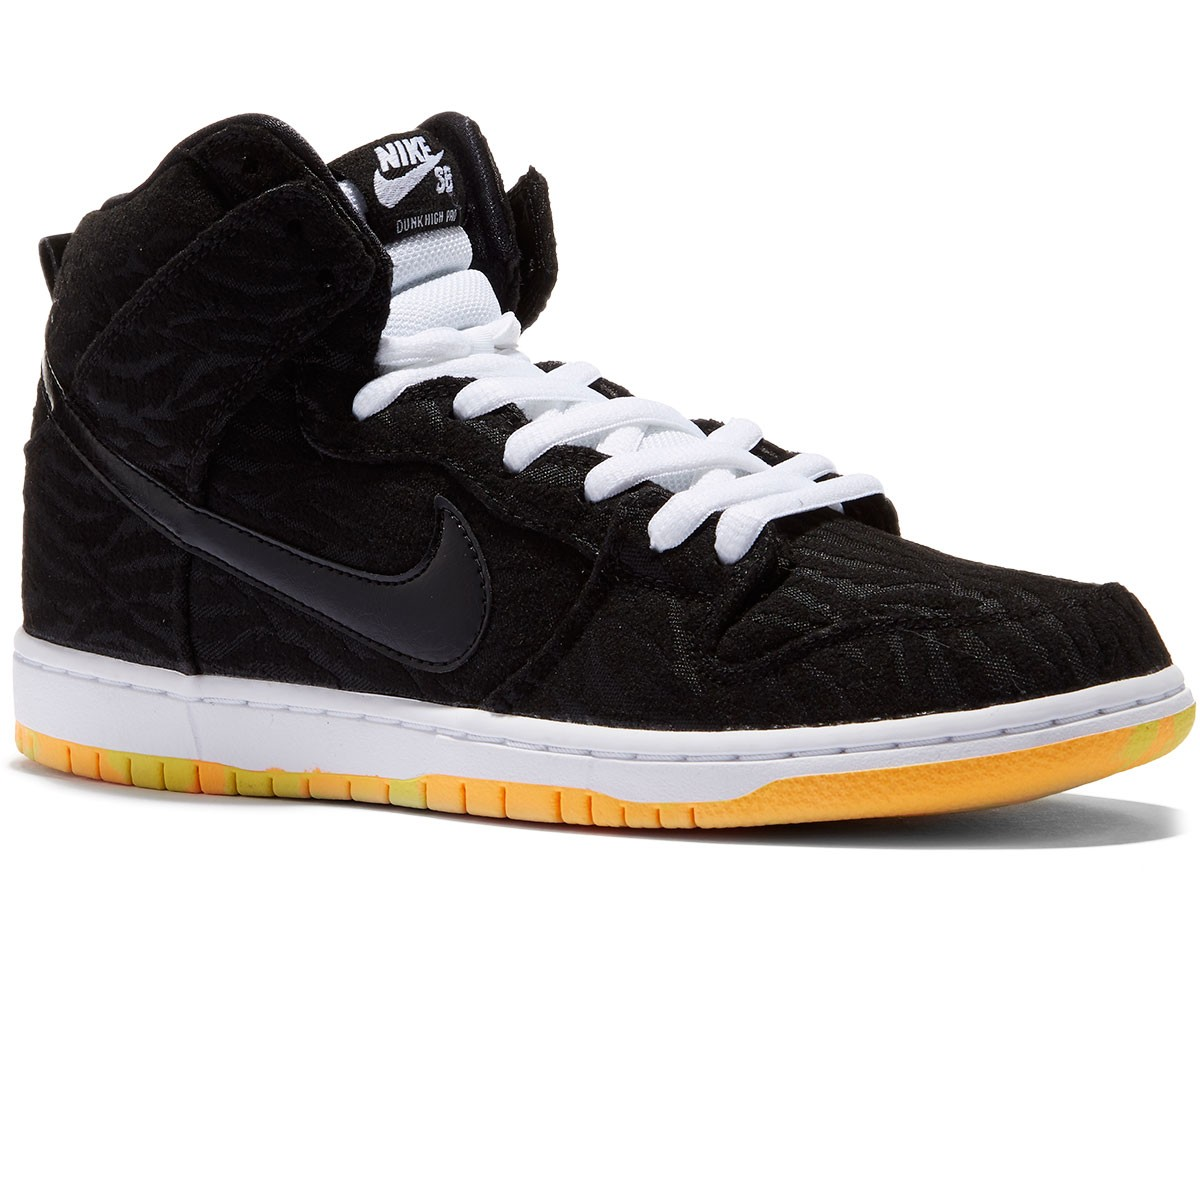 Nike Dunk High Pro SB Shoes - Black/White/Laser Orange - 10.0